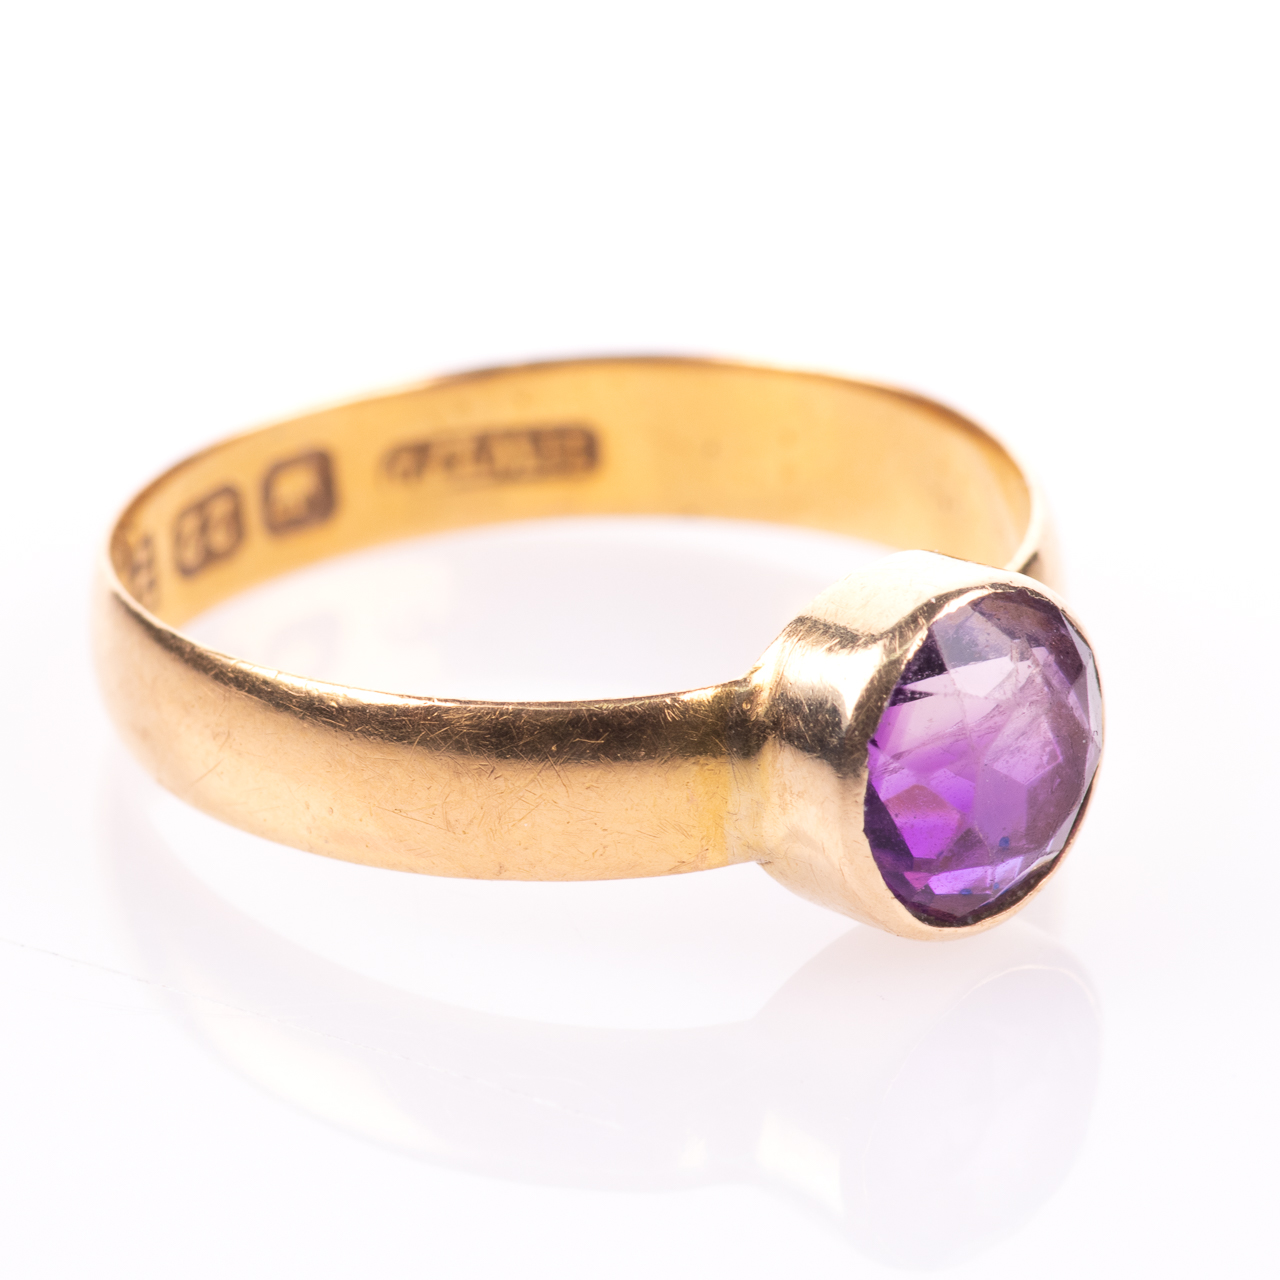 22ct Gold Victorian Amethyst Ring Chester 1899, Howard & Walsh - Image 7 of 7